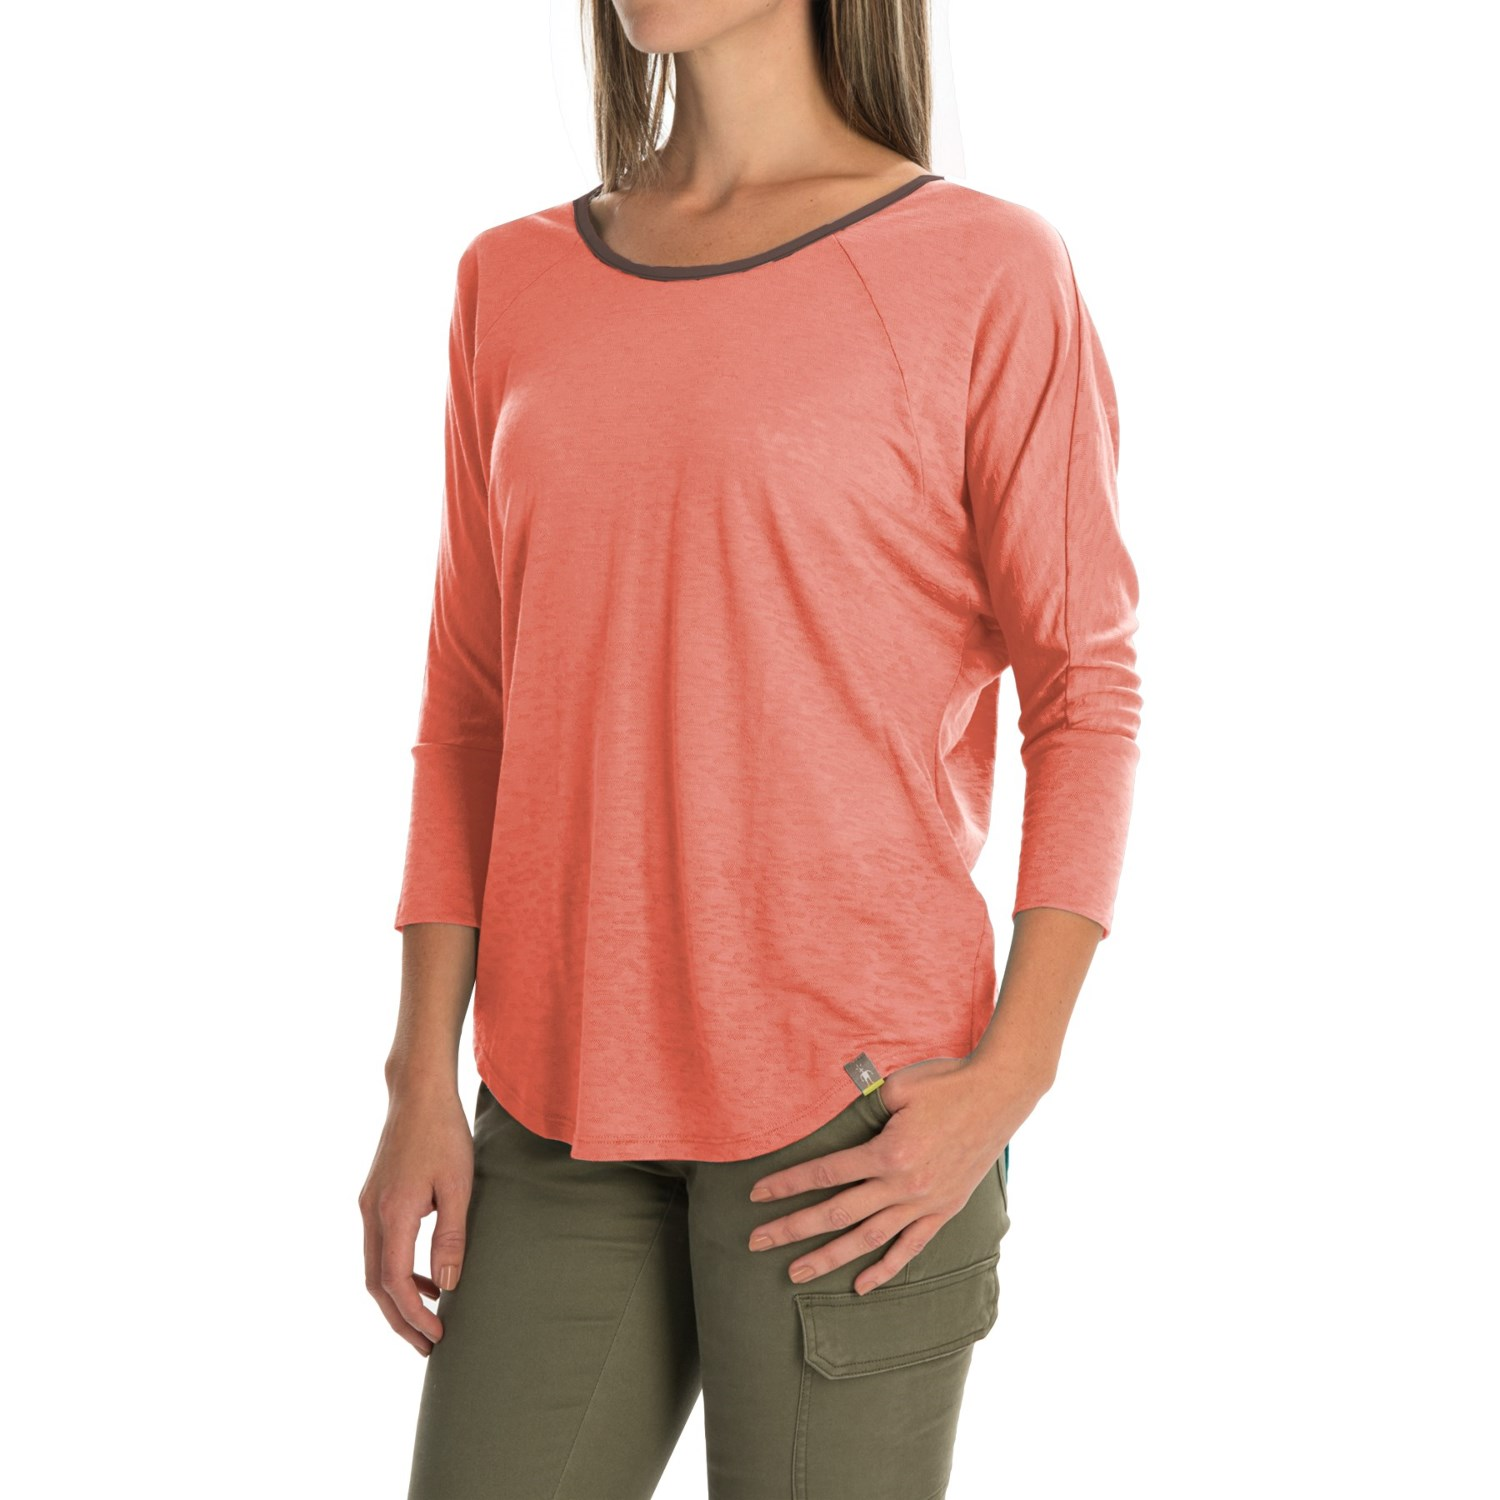 Smartwool emerald valley strappy back t shirt for women for Merino wool shirt womens